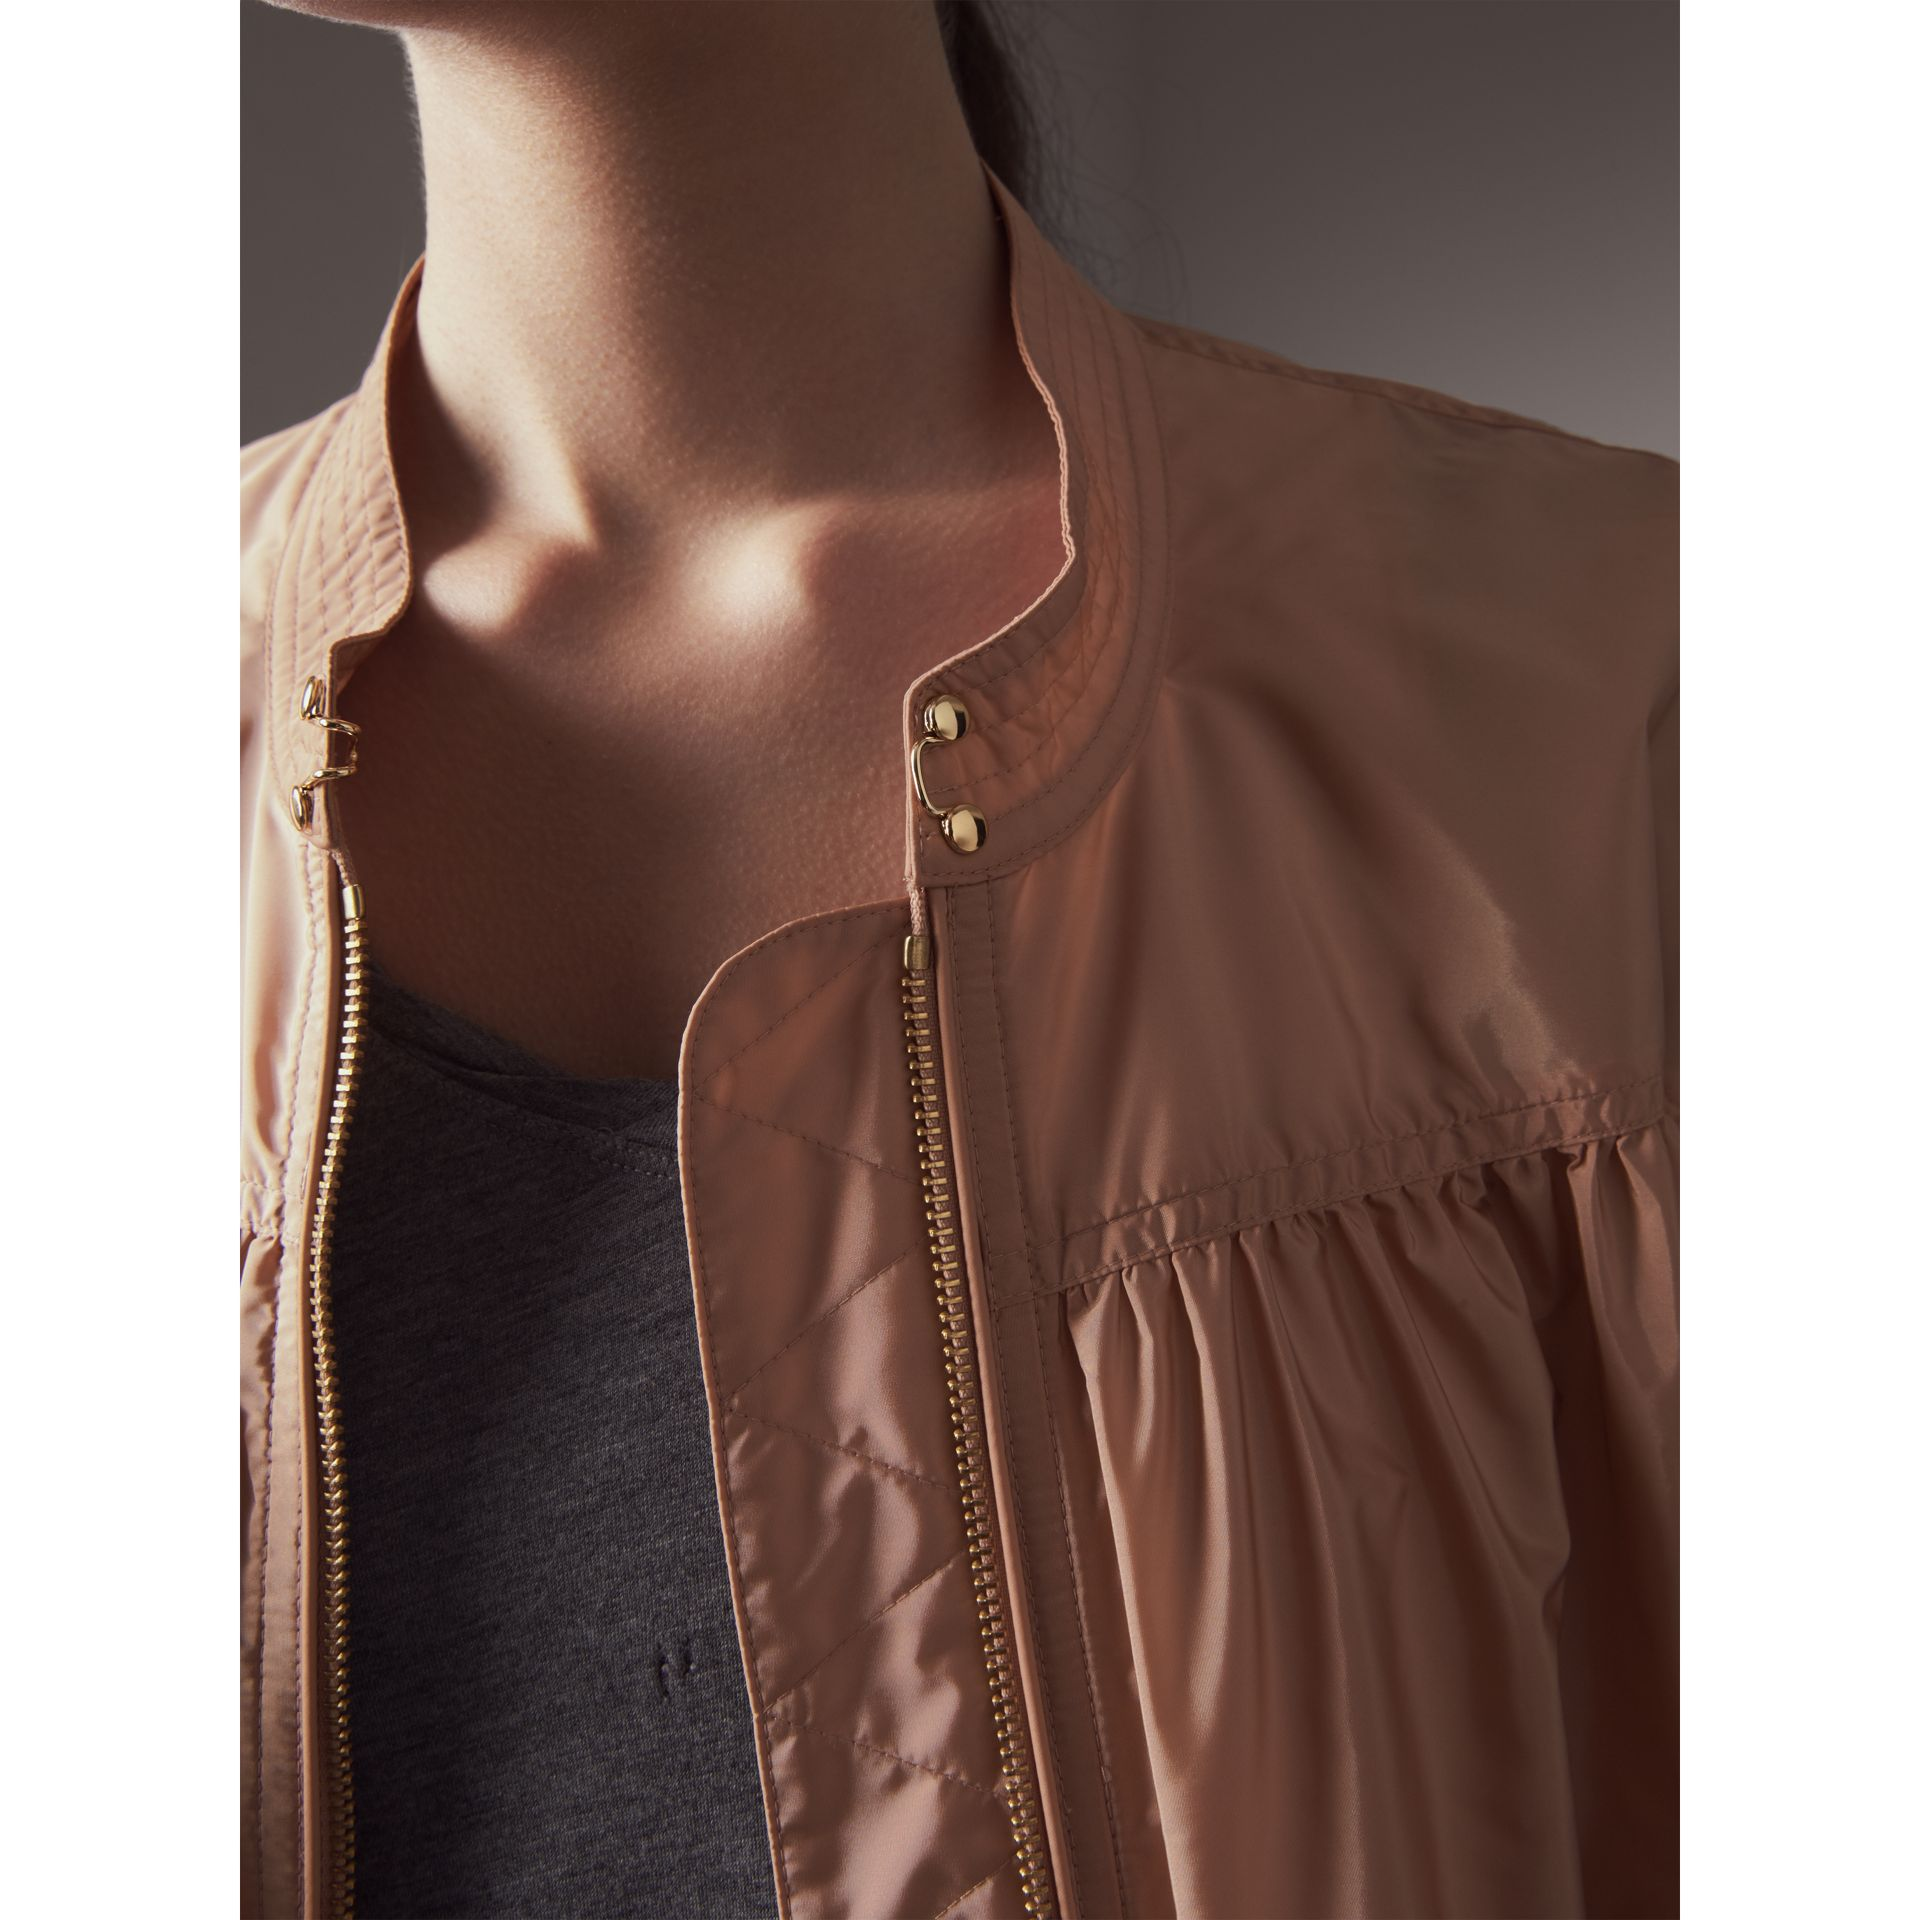 Ruched Showerproof Jacket in Ivory Pink - Women | Burberry - gallery image 2